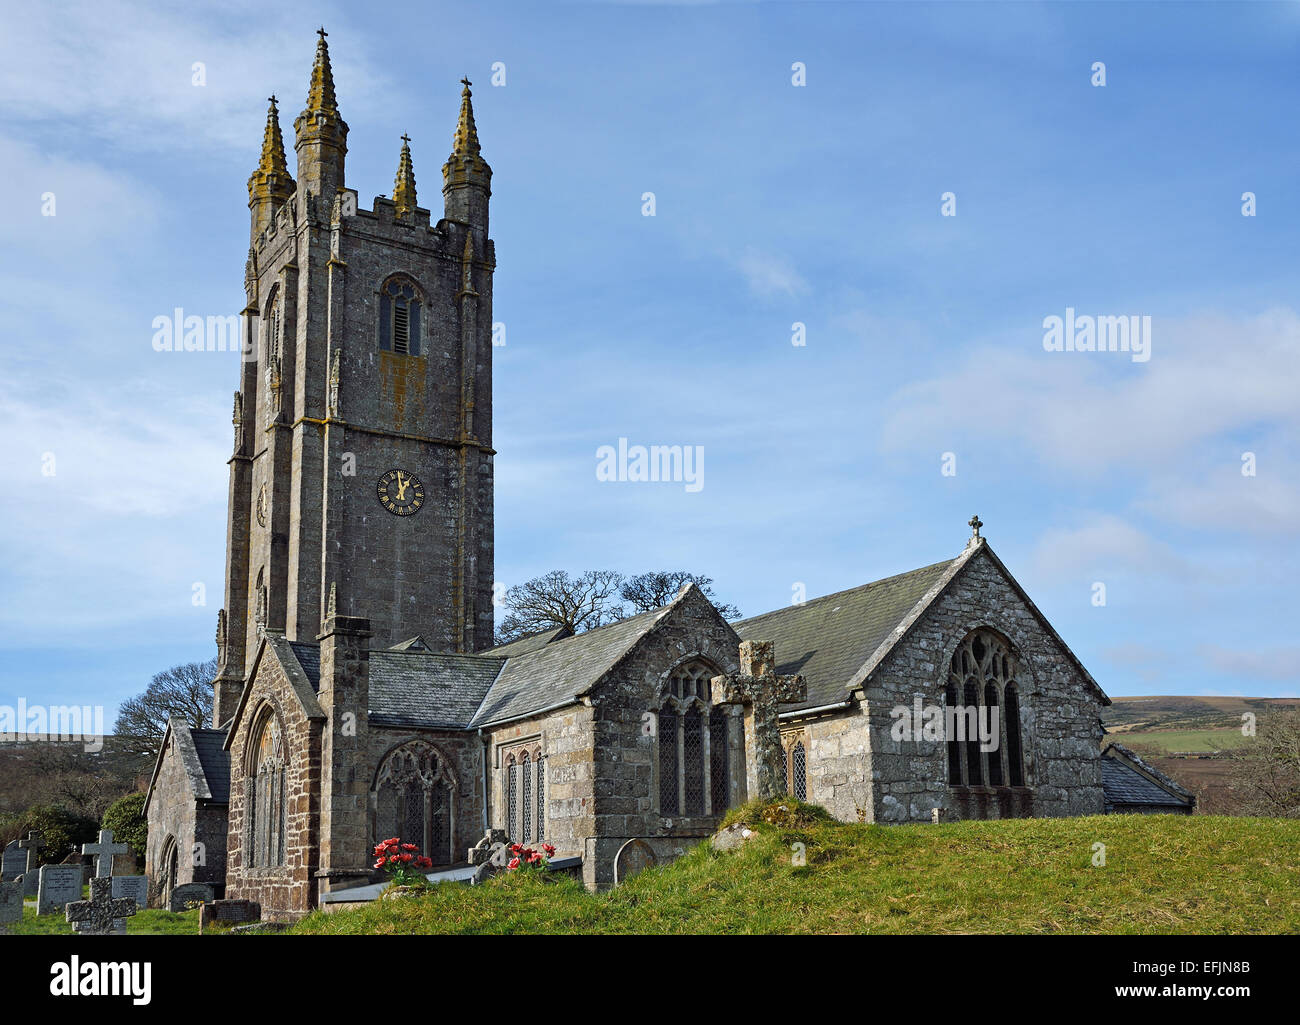 The Parish Church of St Pancras at Widecombe -in-the-Moor , Dartmoor National Park, Devon, UK. Stock Photo